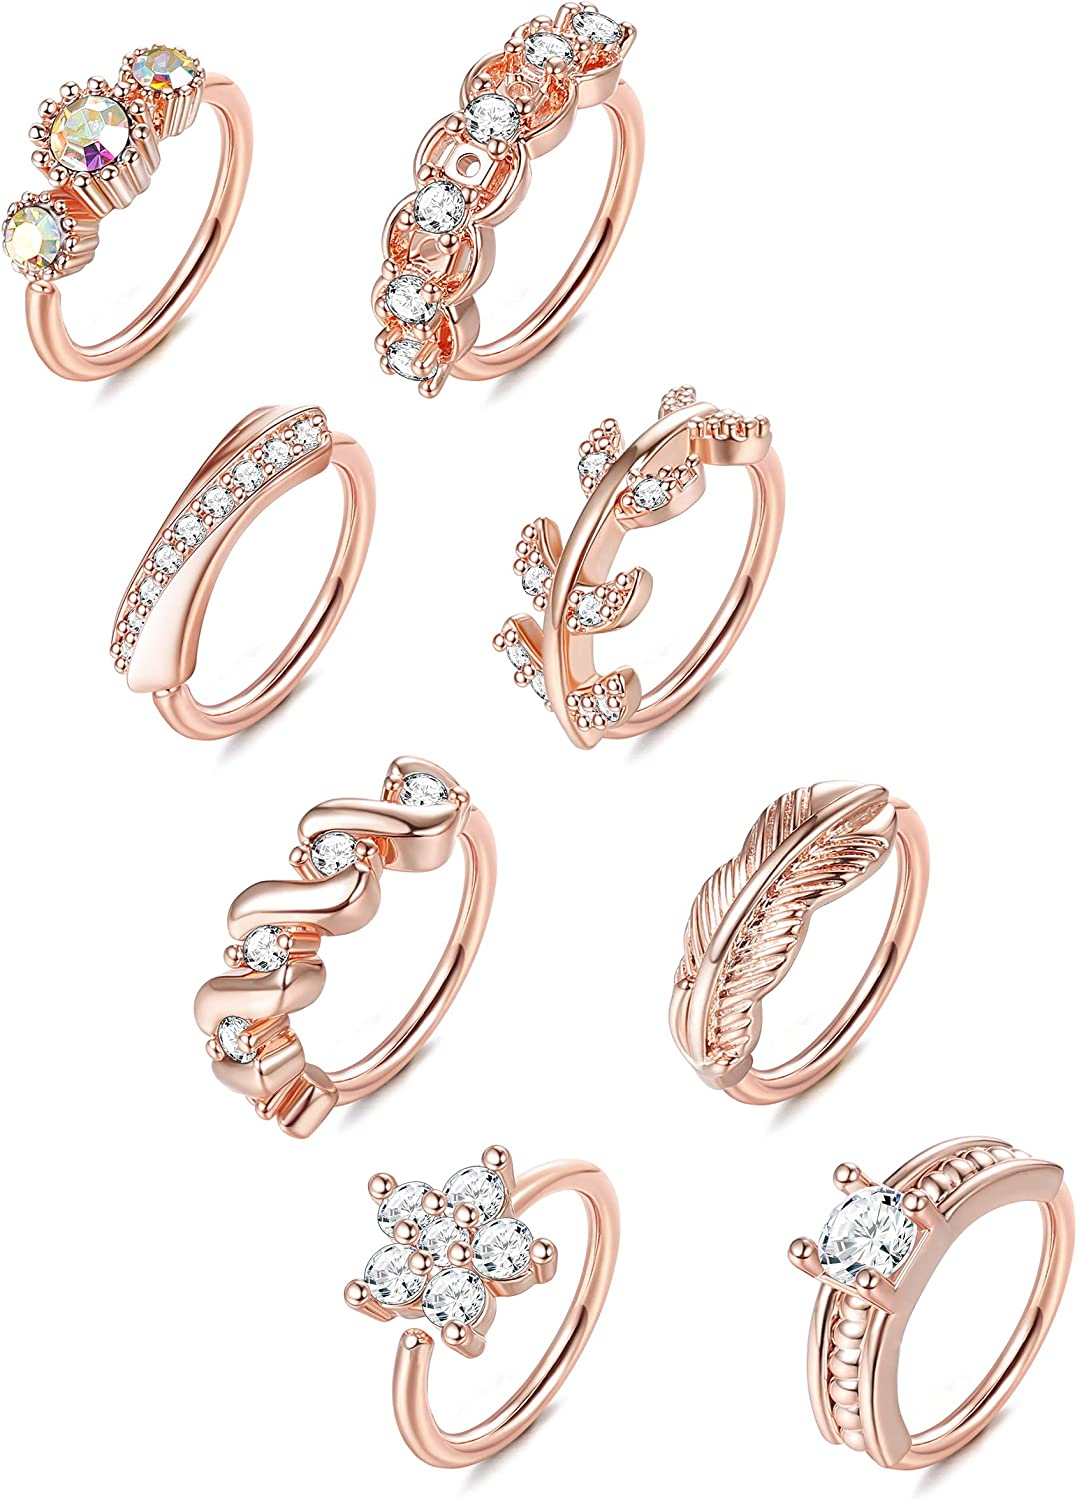 ORAZIO 8Pcs 20G Stainless Steel Nose Ring Hoop Paved CZ Leaf Cartilage Earring for Women Body Ear Piercing Hoop Ring for Nose Ear Cartilage